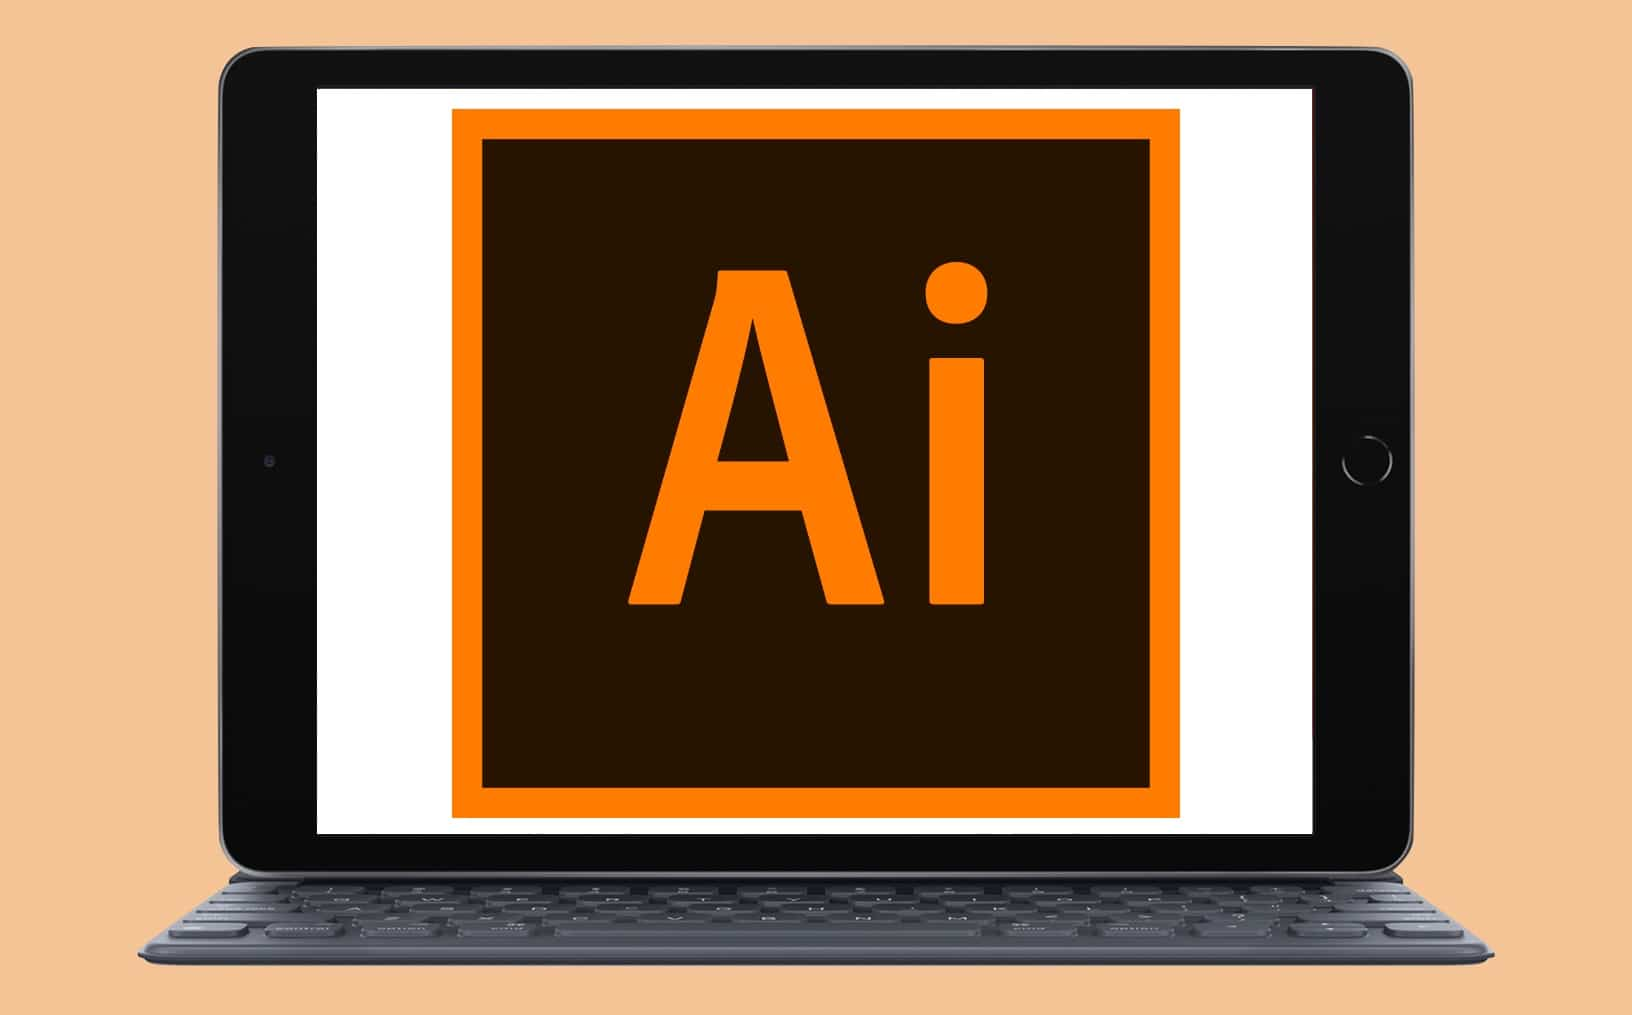 Adobe Illustrator for iPad